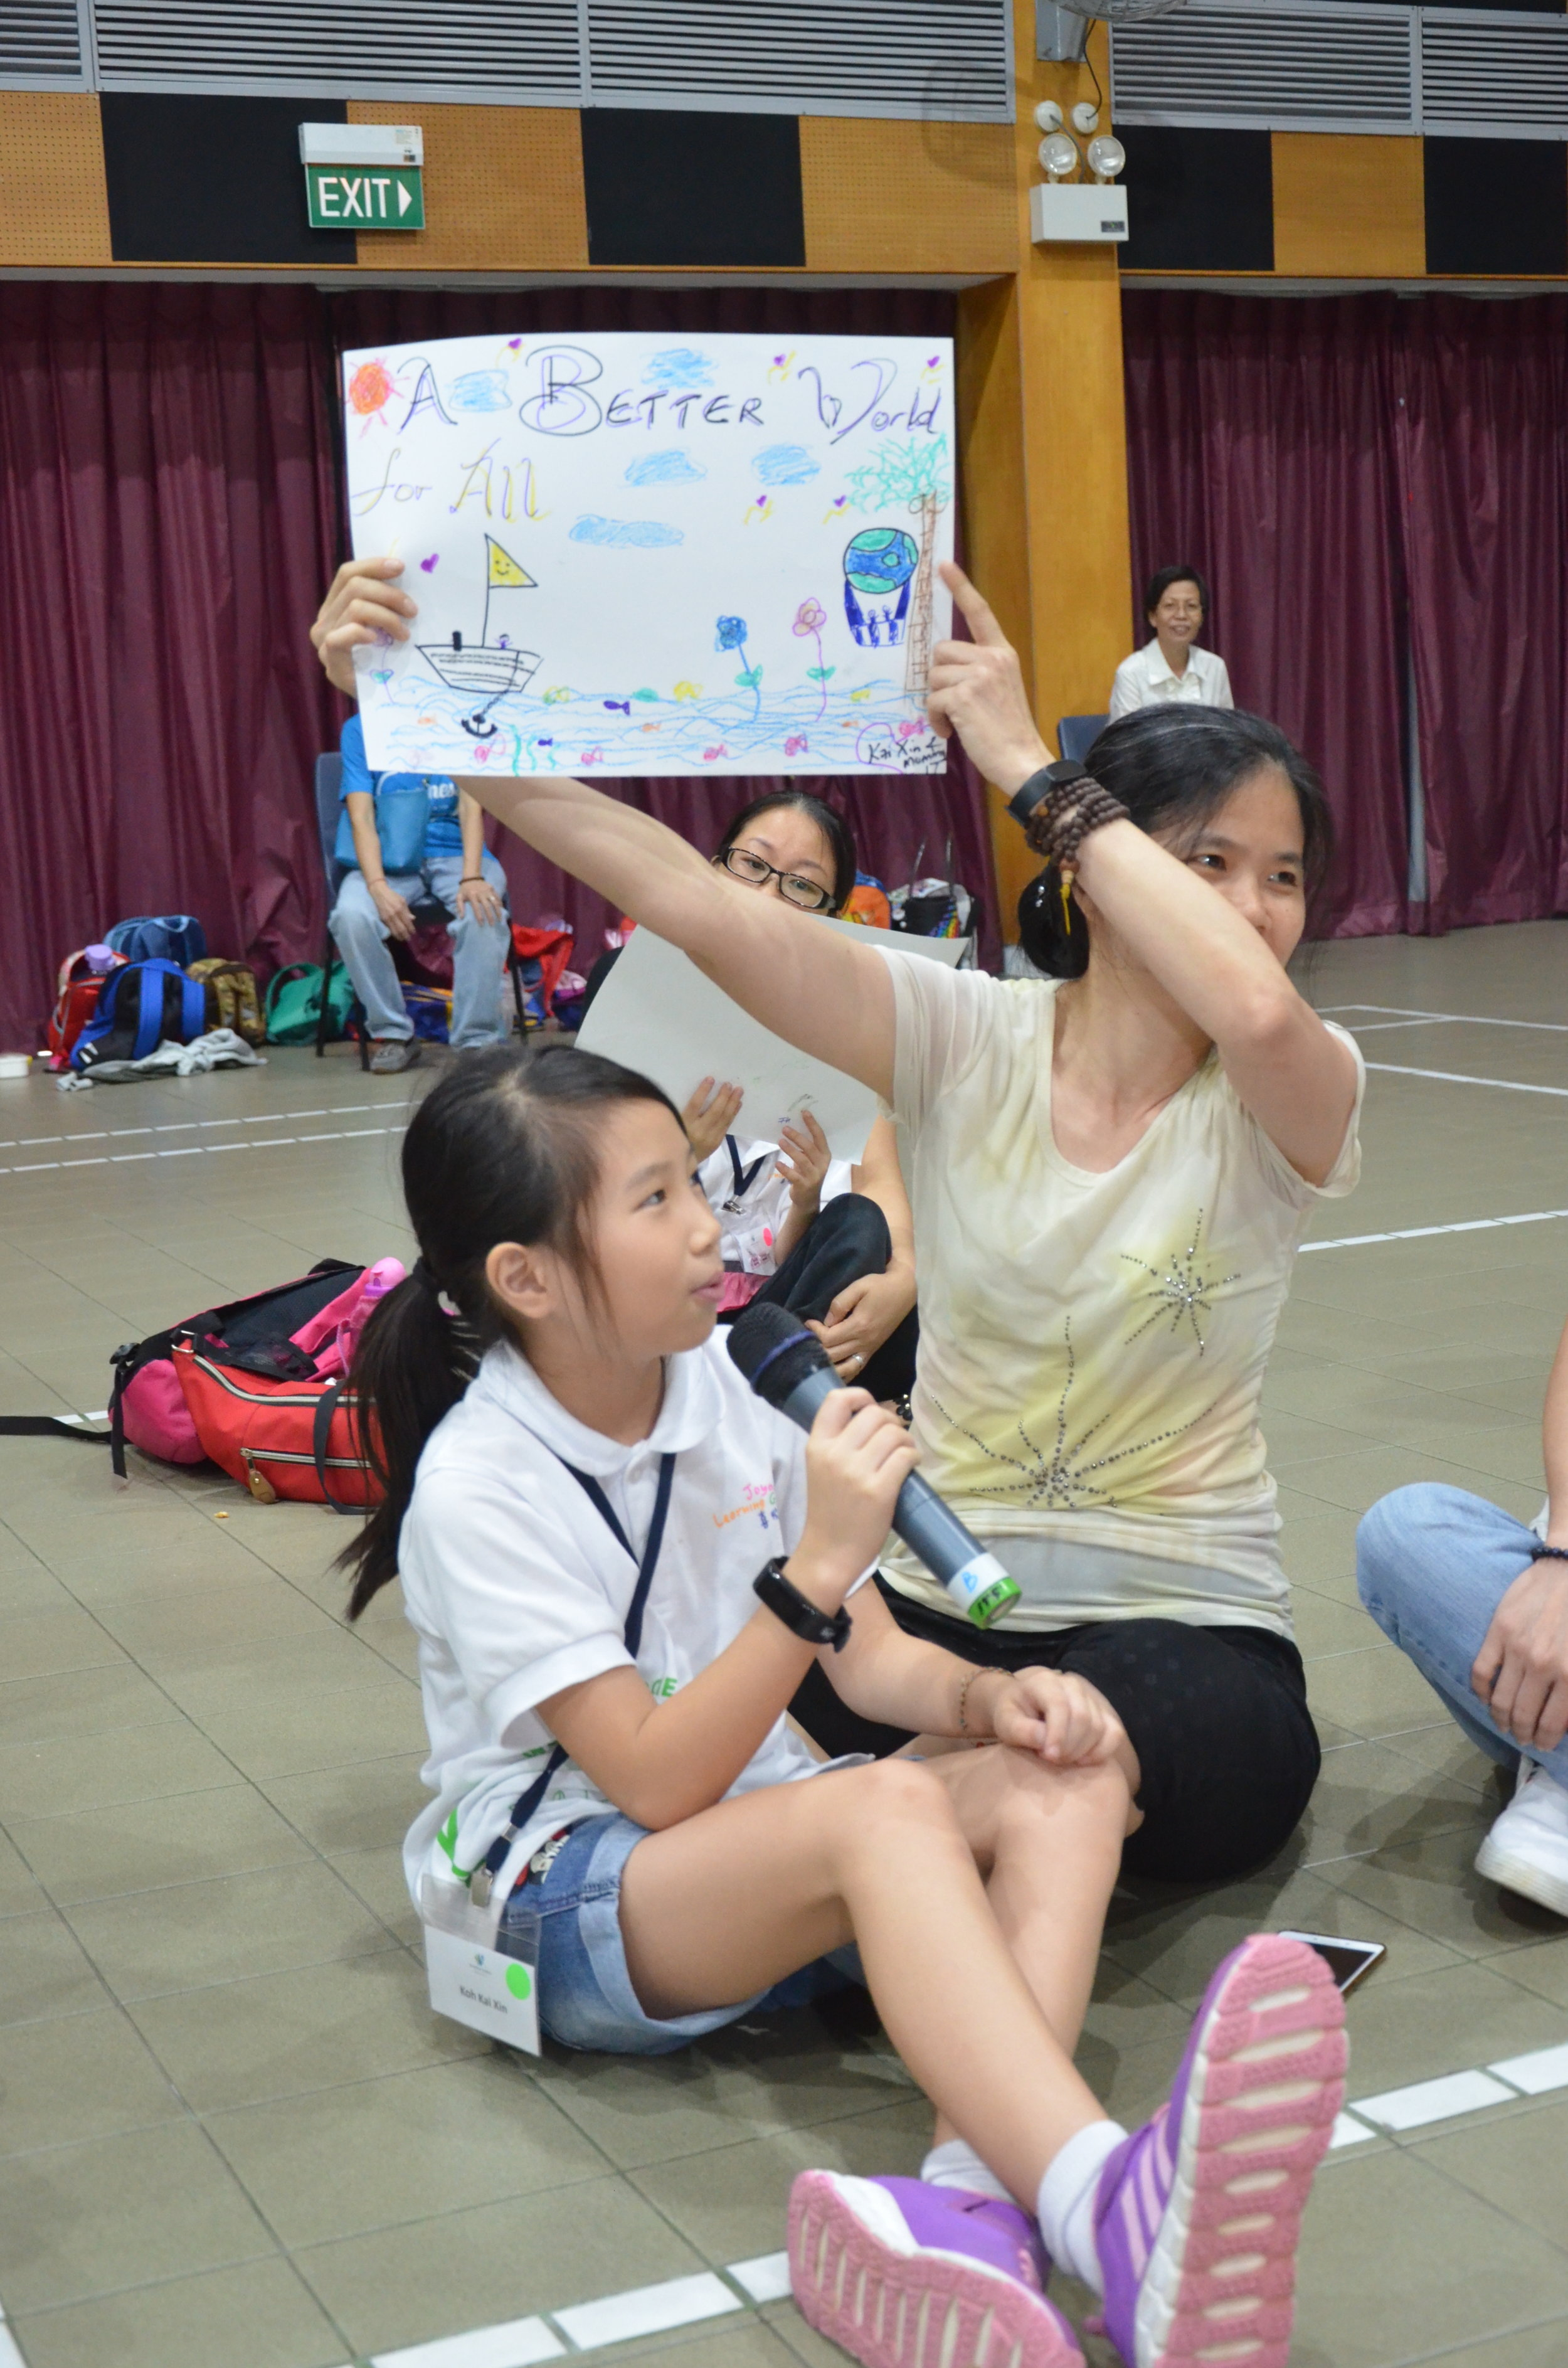 """- """"We drew a hot air balloon so that we can go around the world and give help to people who are in needs. At the same time, all the birds with hearts, we want to bring the love to everybody, whenever we go around we want them to know that we care for them."""" - Mother & Kai Xin, 10 yrs old."""